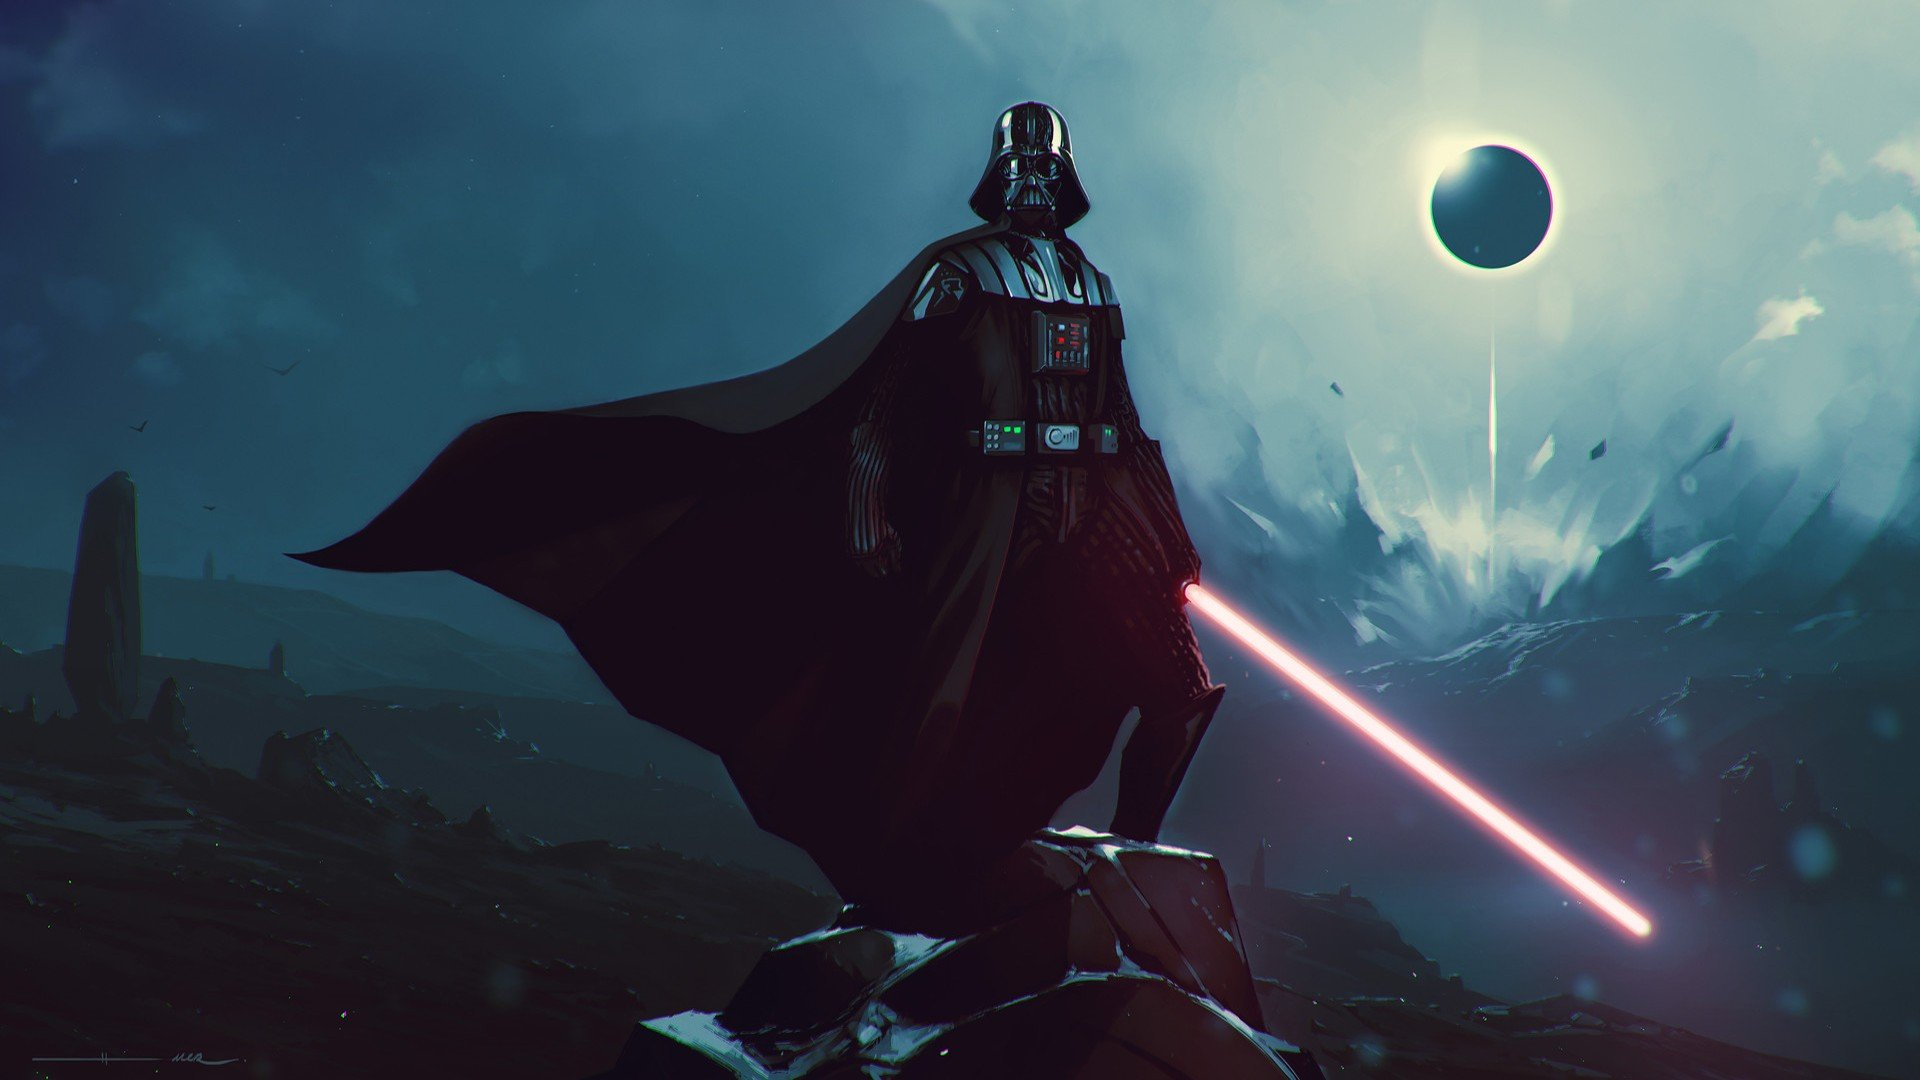 Darth Vader Star Wars Sith Lightsaber Hd Wallpapers Desktop